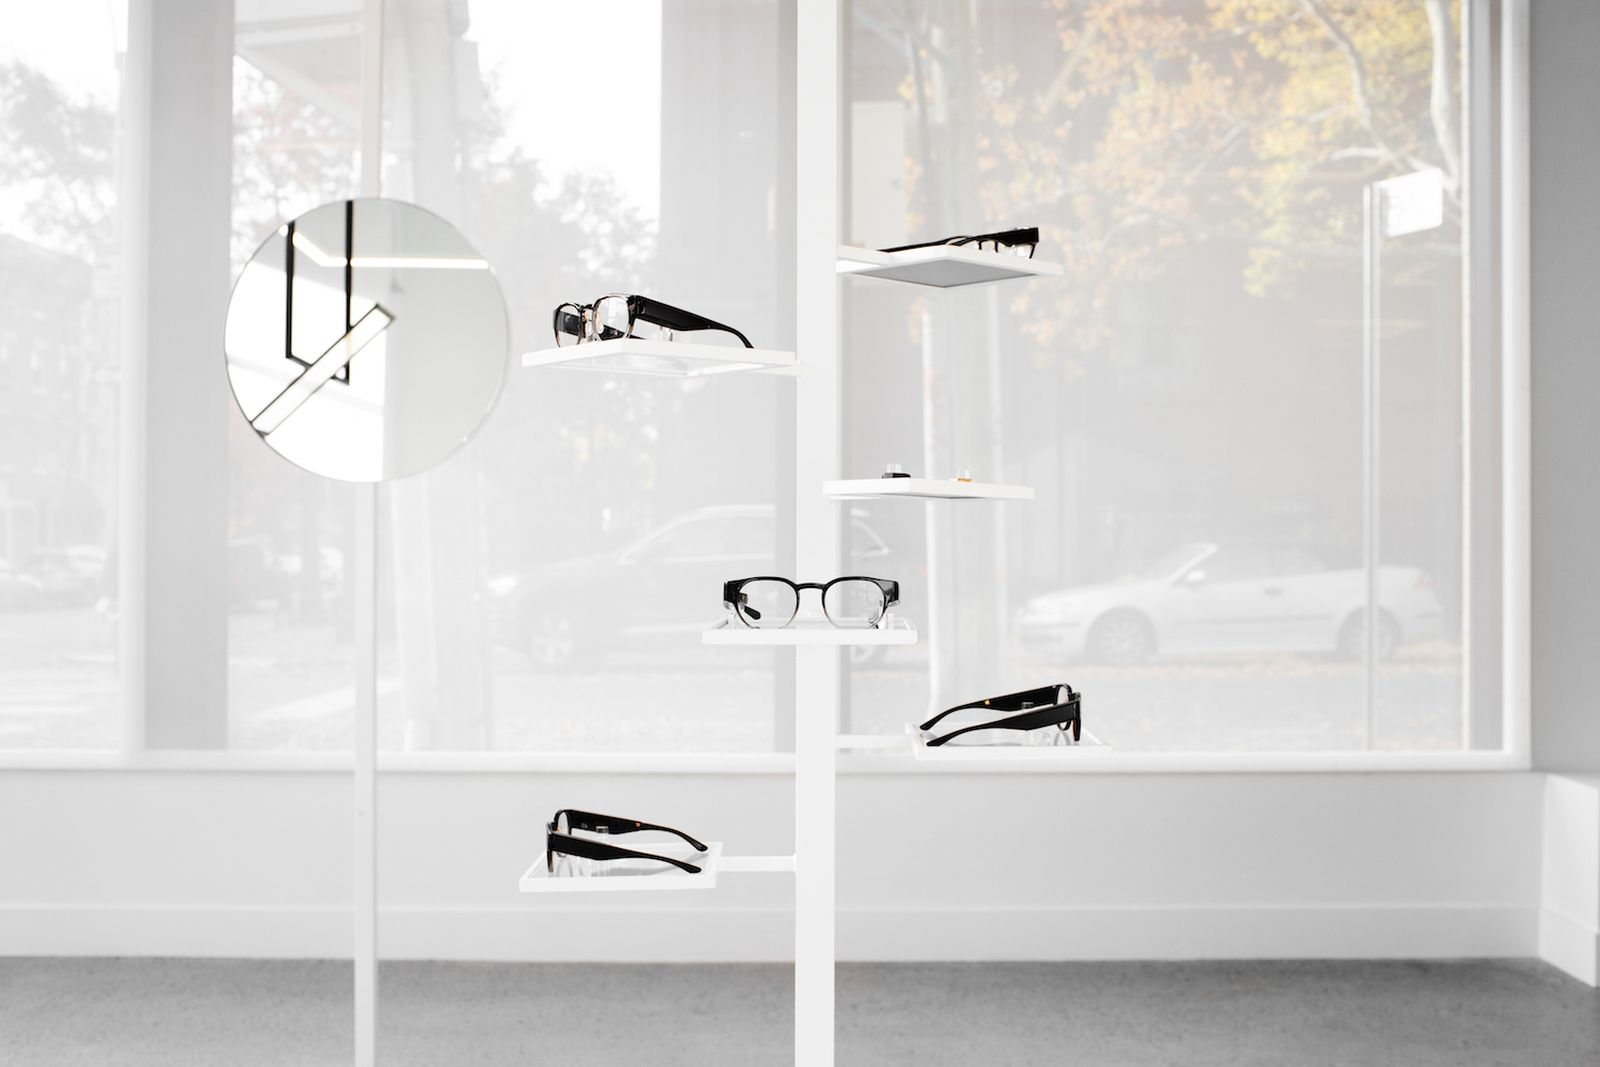 north focals smart glasses showroom focals by north